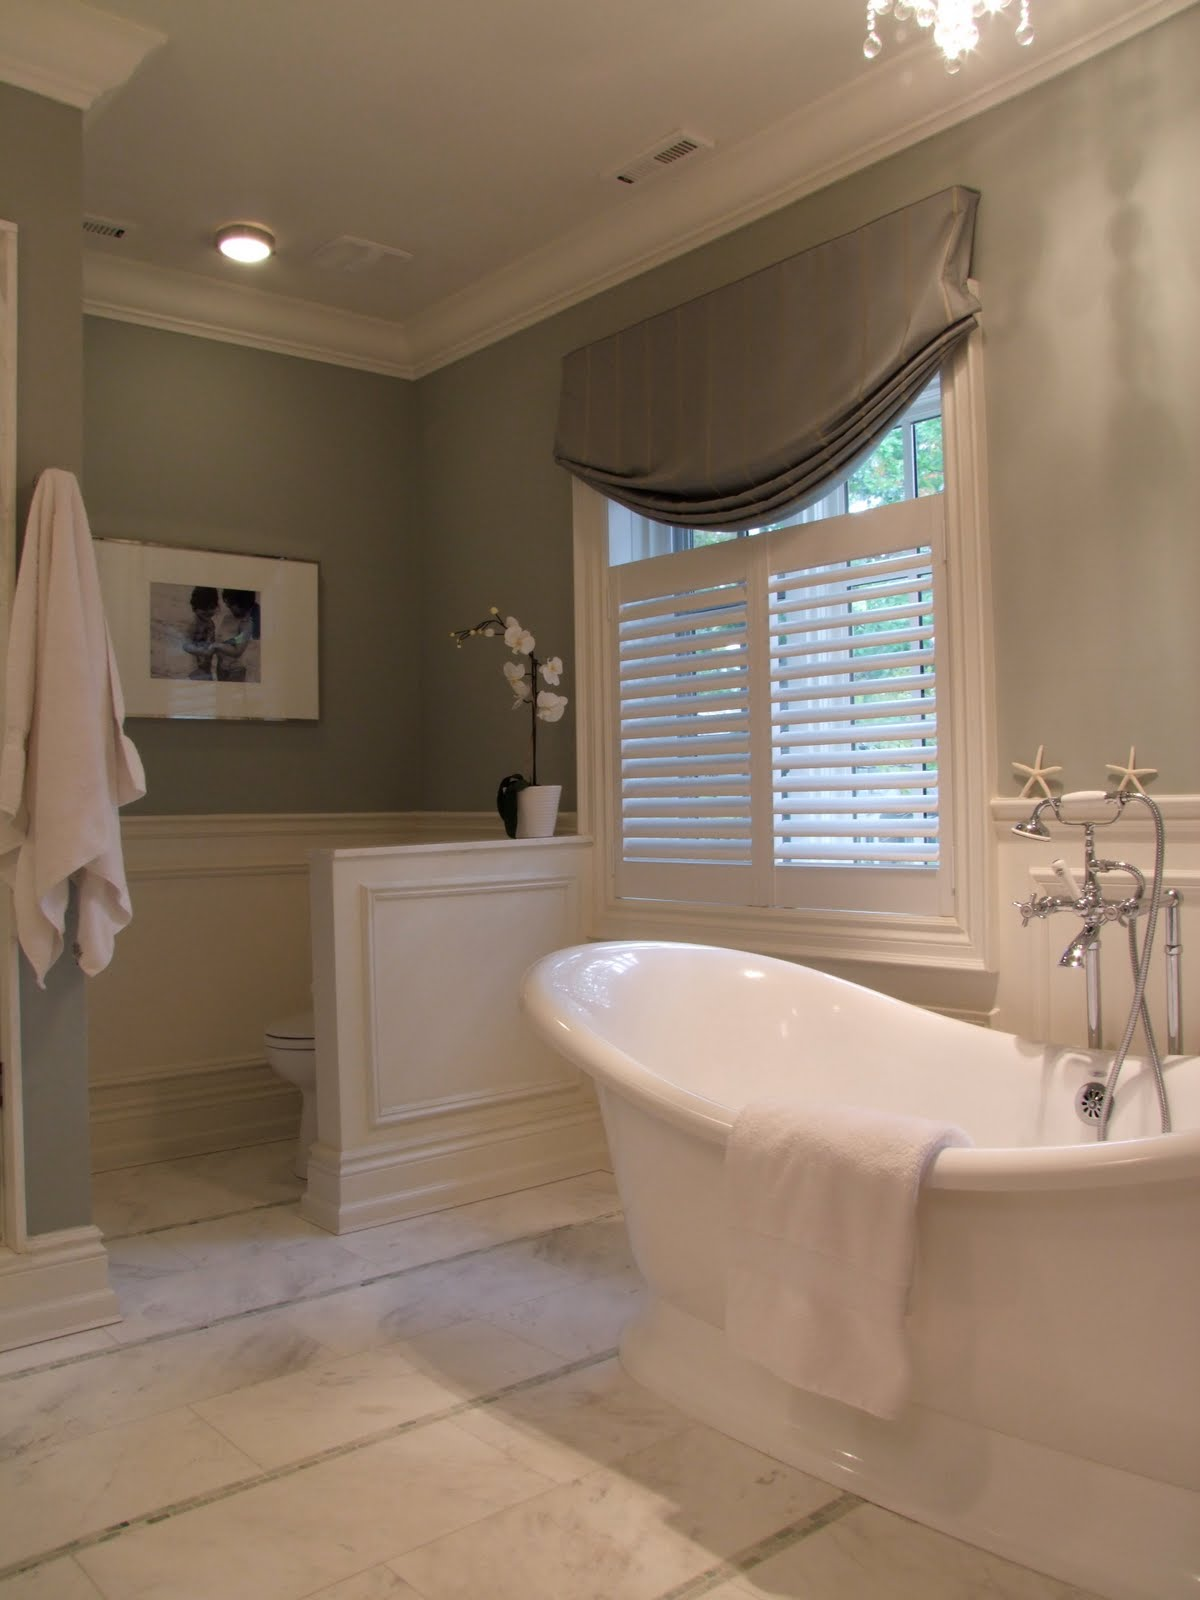 Creed archives family bathroom for Bathroom layout